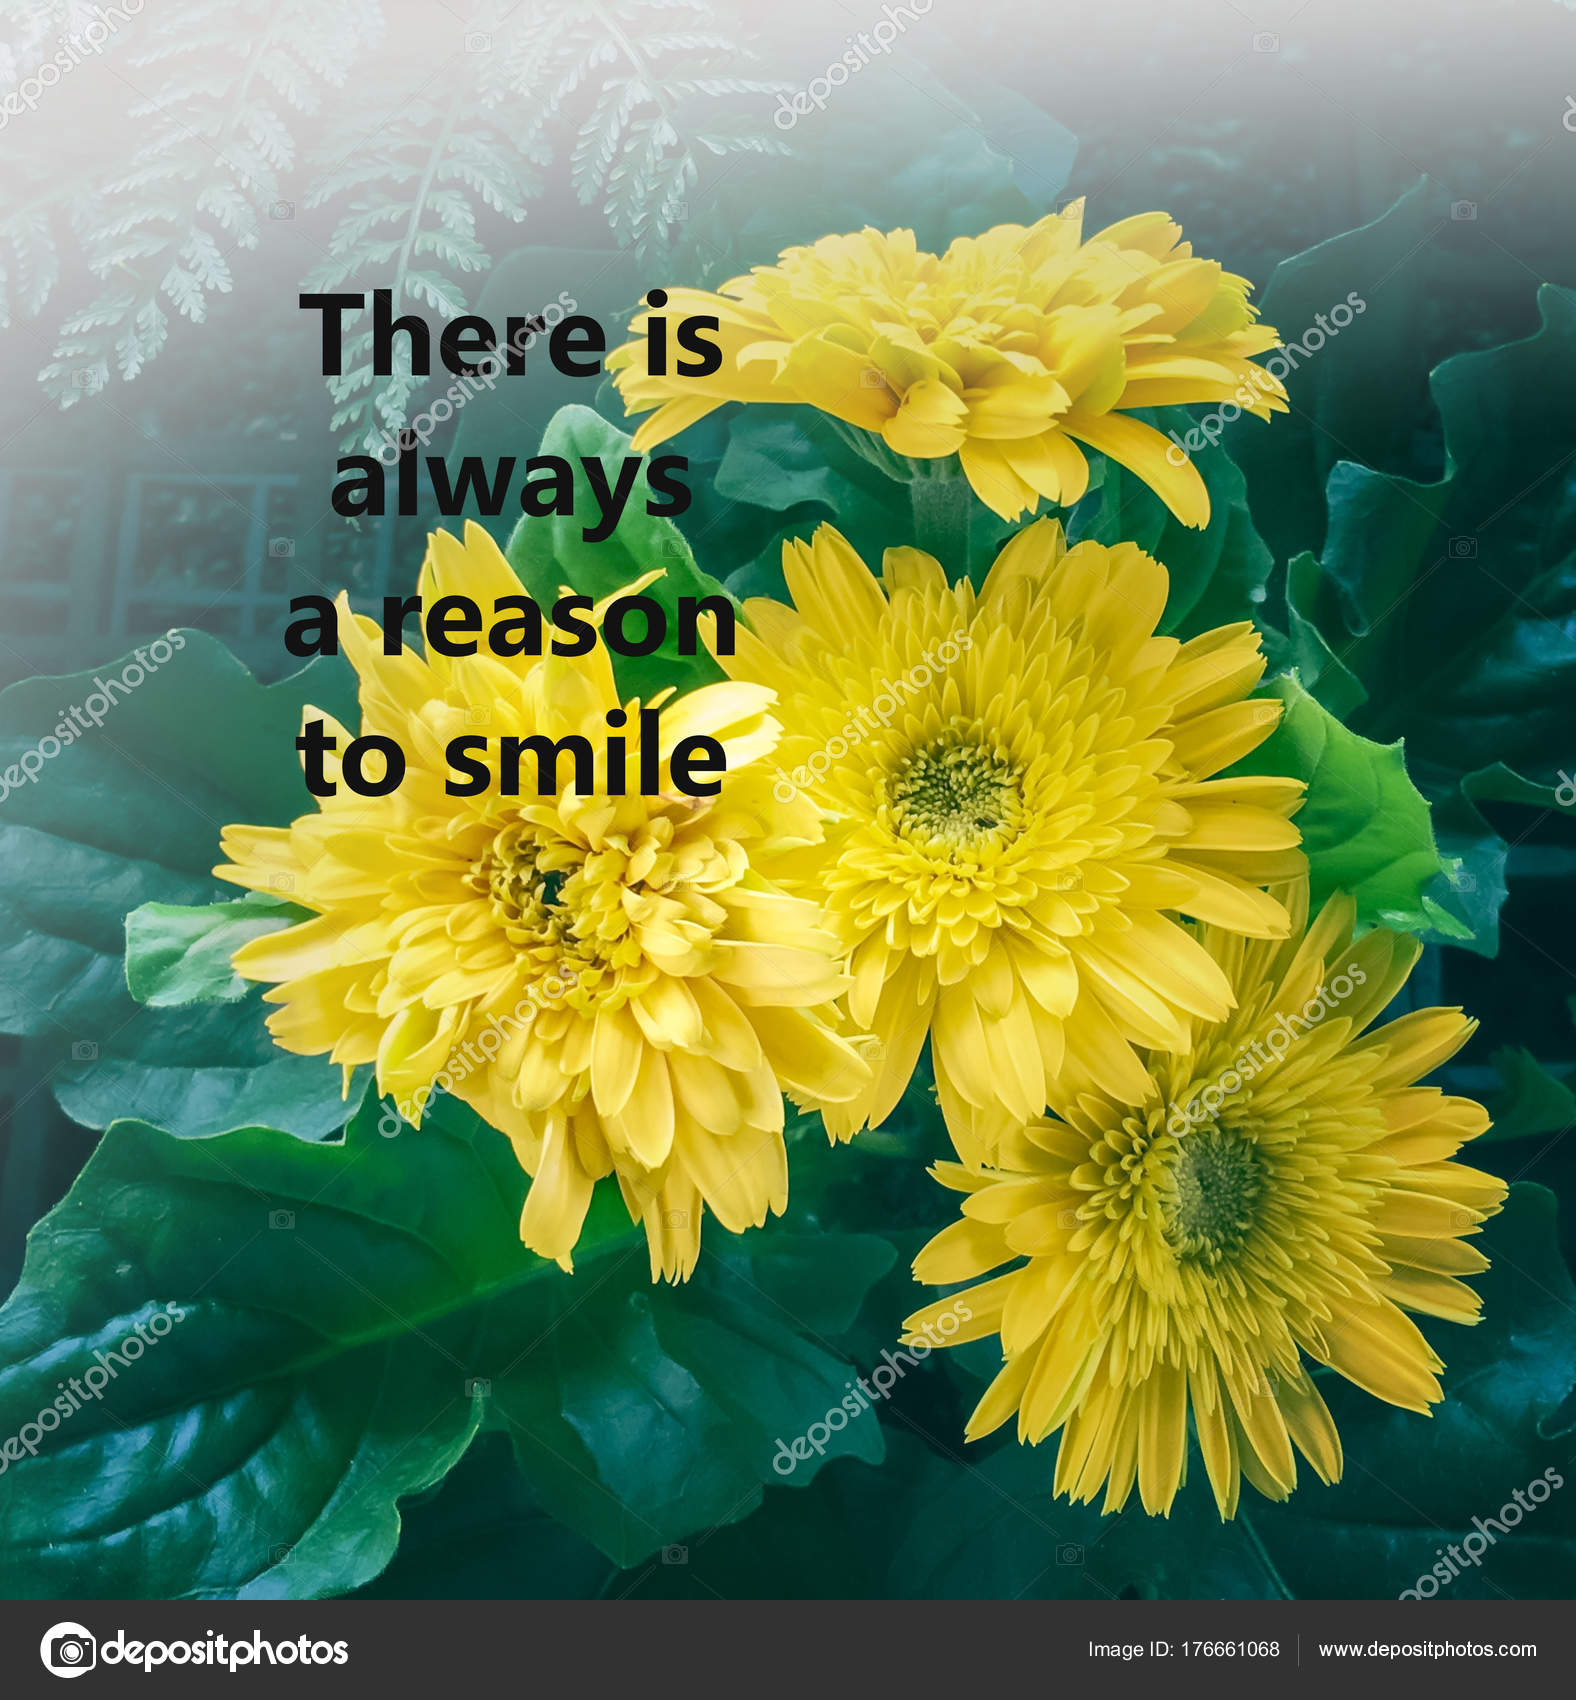 Inspirational Quote Blurred Flowers Background Always Reason Smile